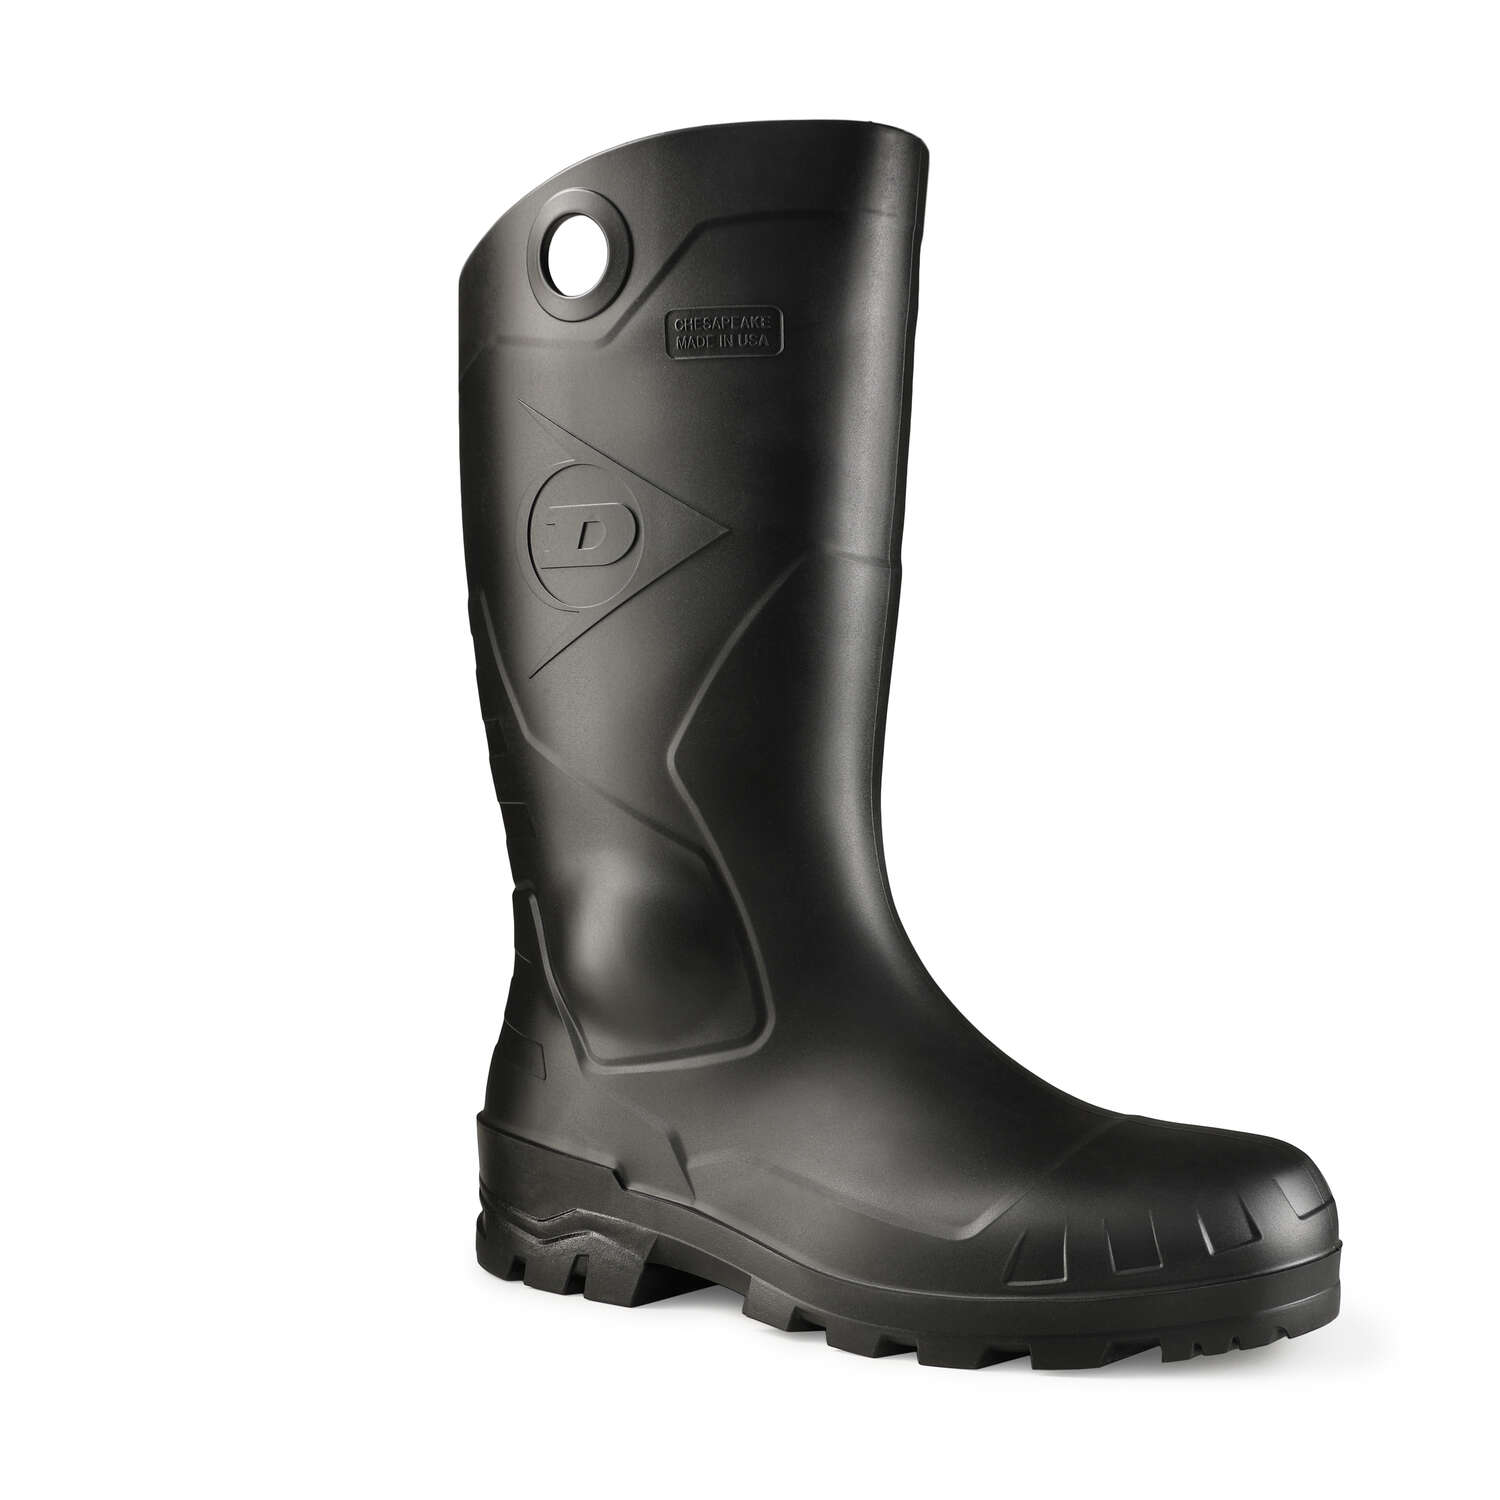 Onguard  Male  Waterproof Boots  Black  Size 9